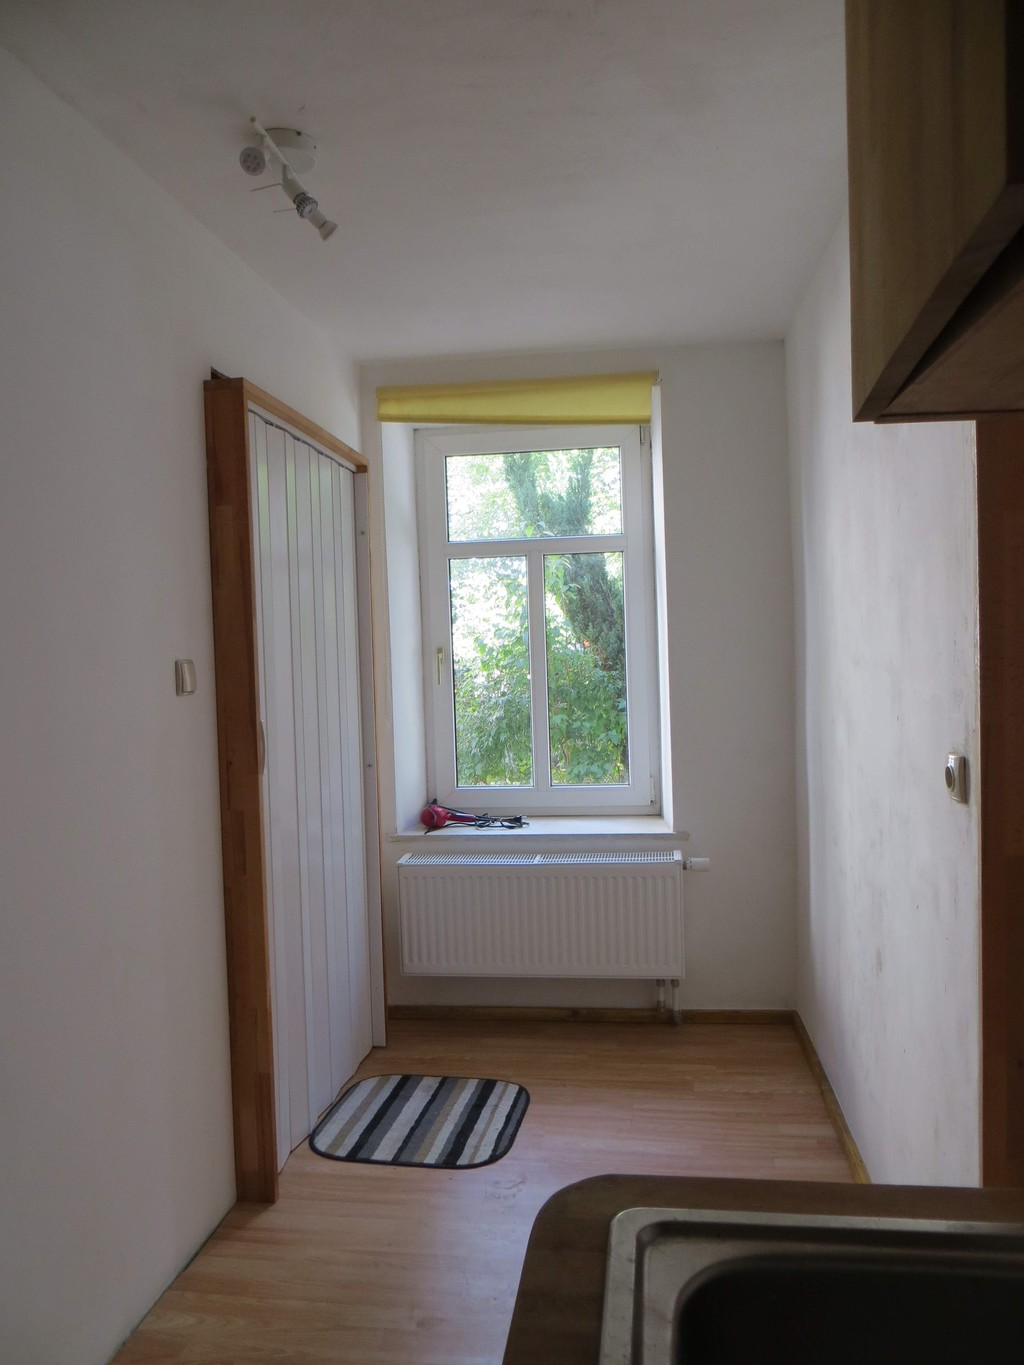 One Small Ground Floor Flat In Old House In Salzburg